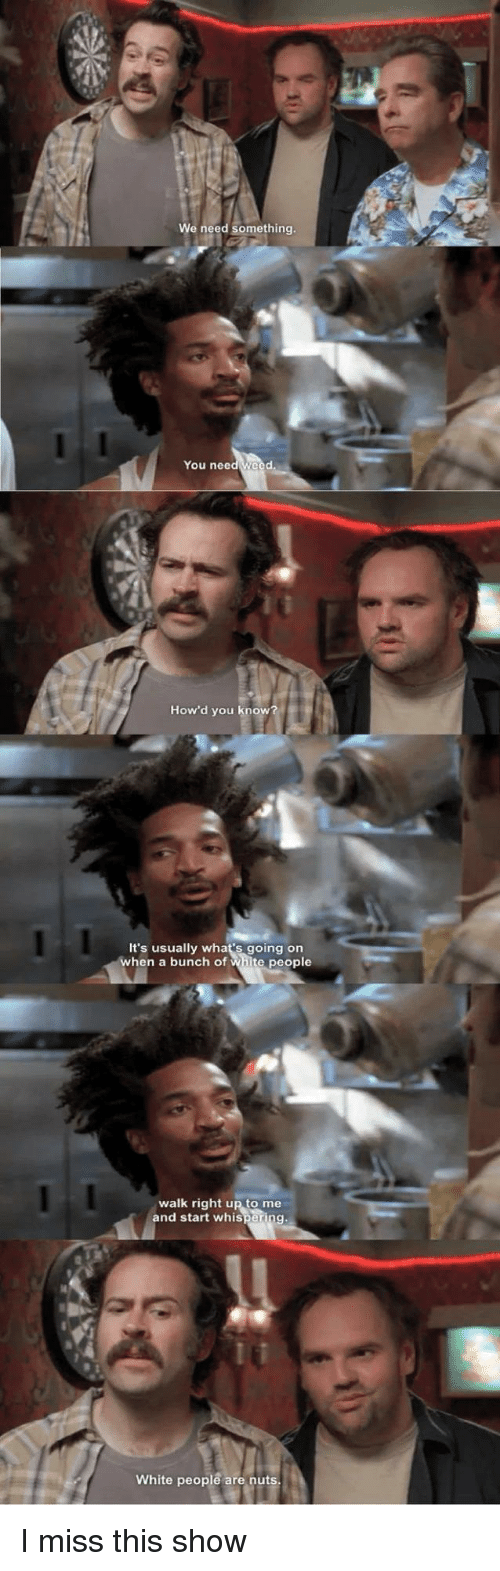 White People, White, and You: We need something  You needweed  How'd you know?  It's usually what's going on  when a bunch of white people  walk right up to me  and start whispering  White people are nuts I miss this show